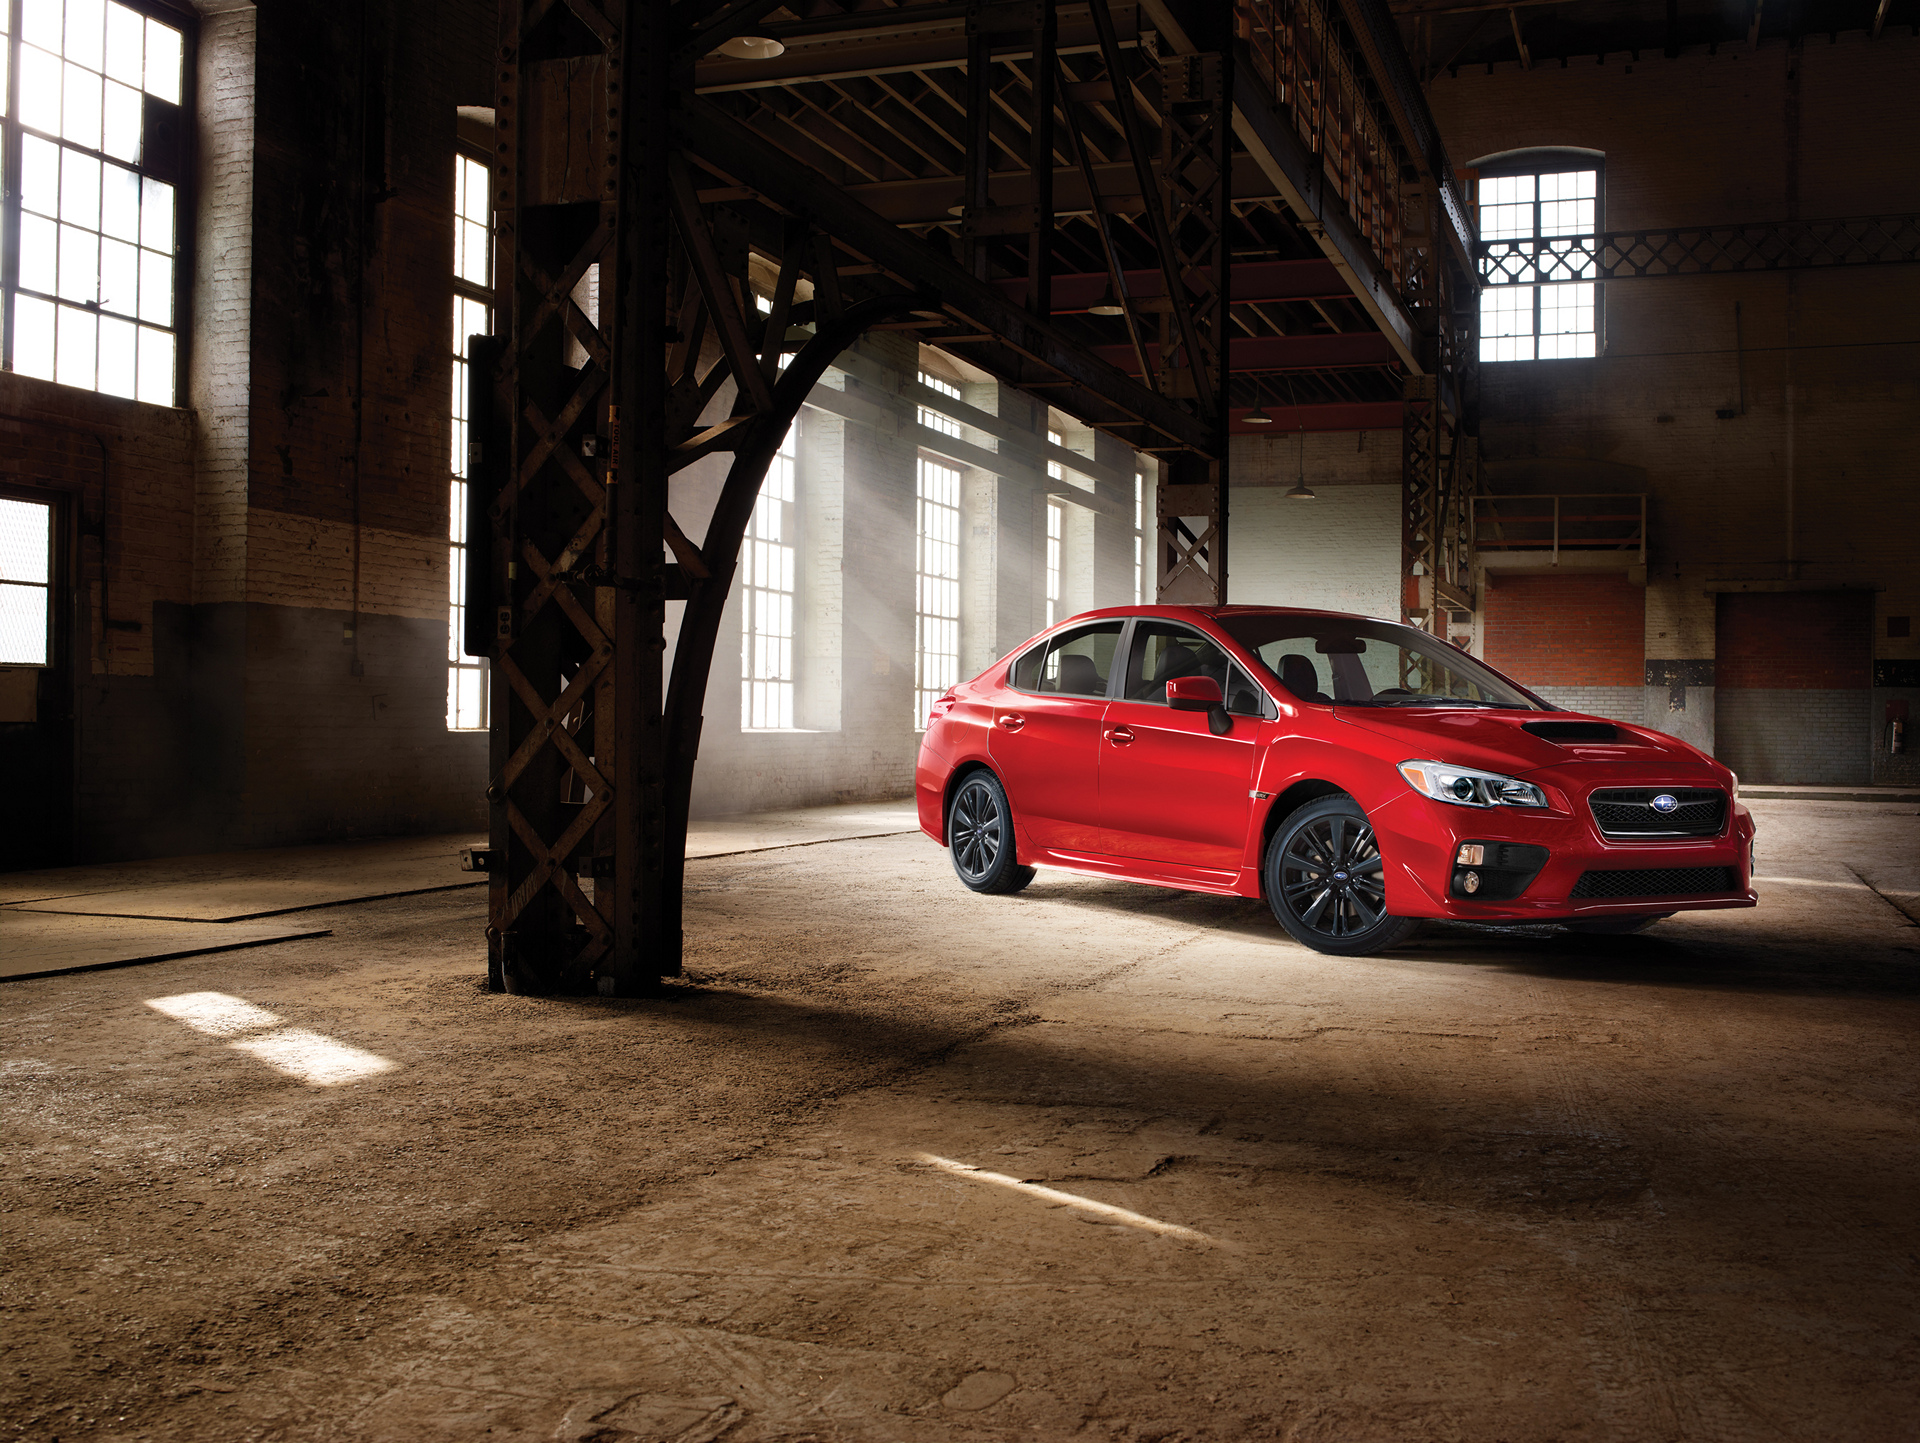 2017 Subaru WRX © Fuji Heavy Industries, Ltd.